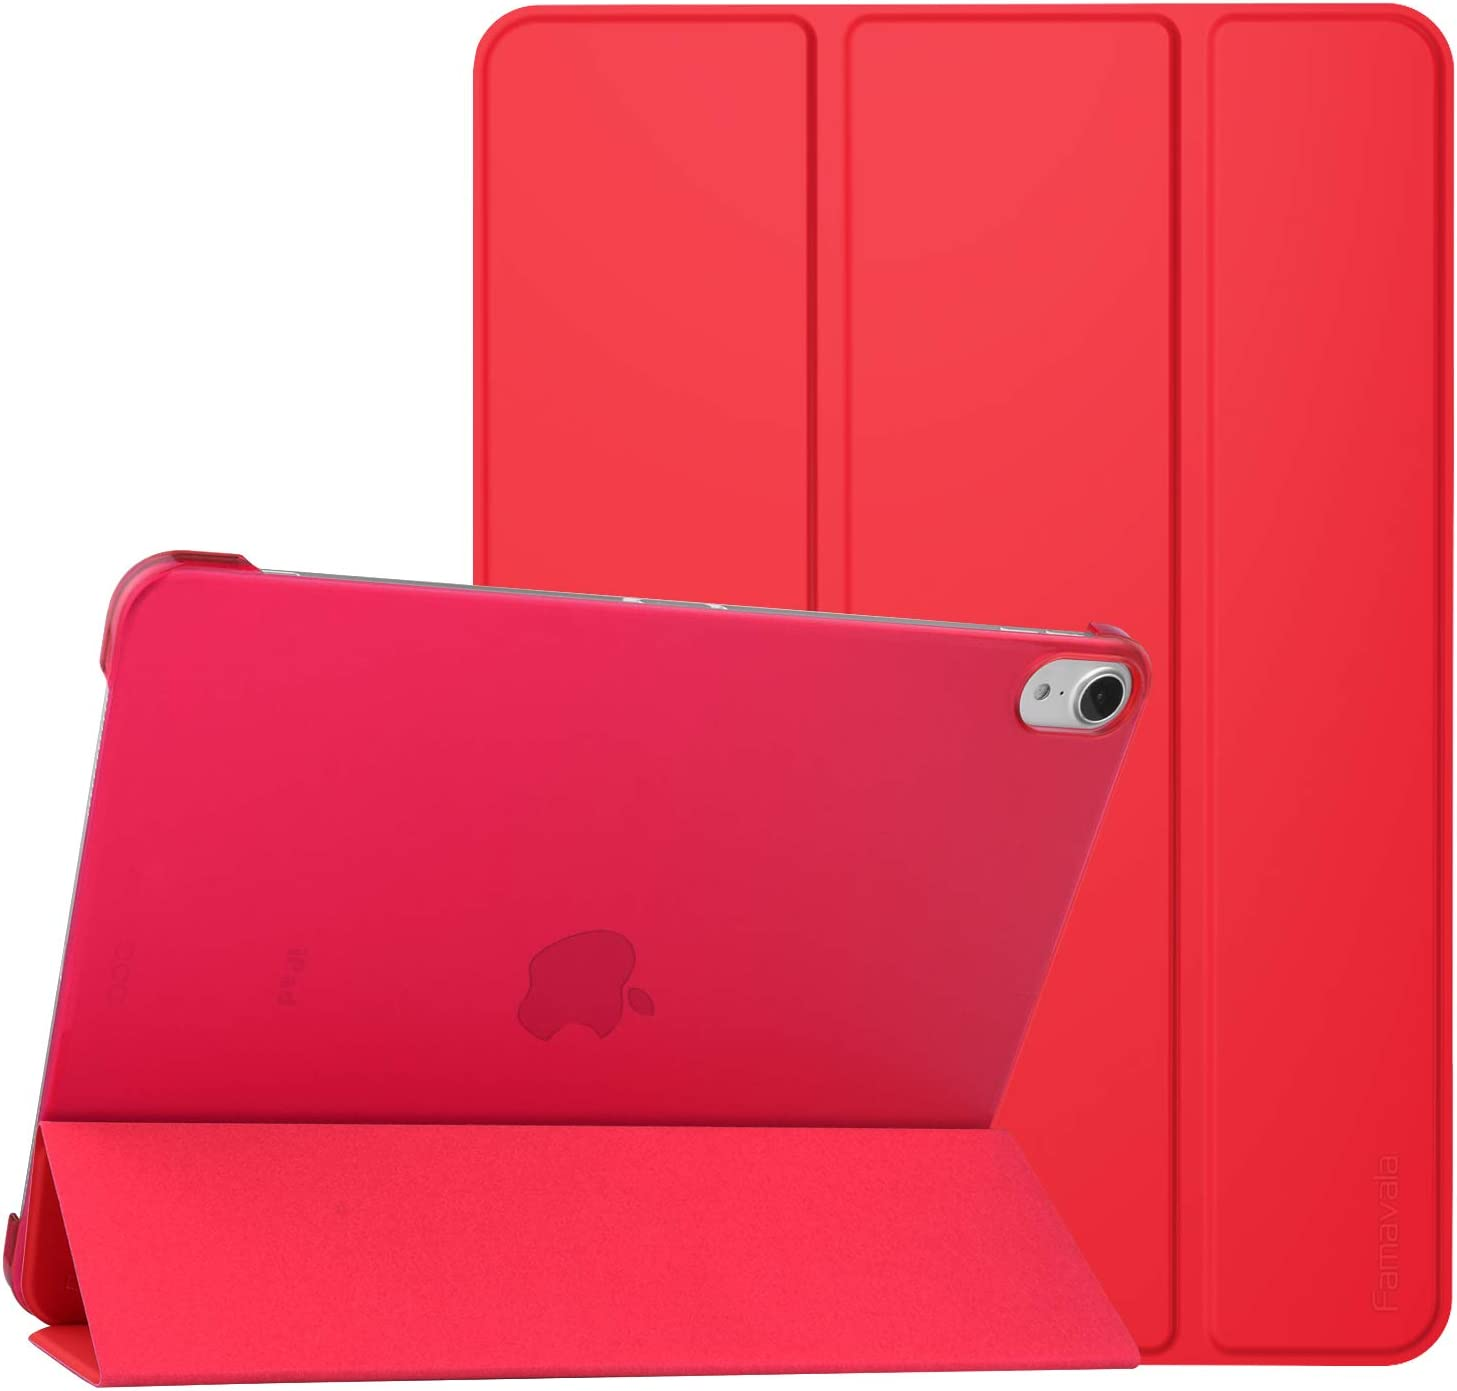 Famavala Max 49% OFF Slim Thinner Shell Case Cover Gener 4th 4 Air Max 40% OFF iPad for